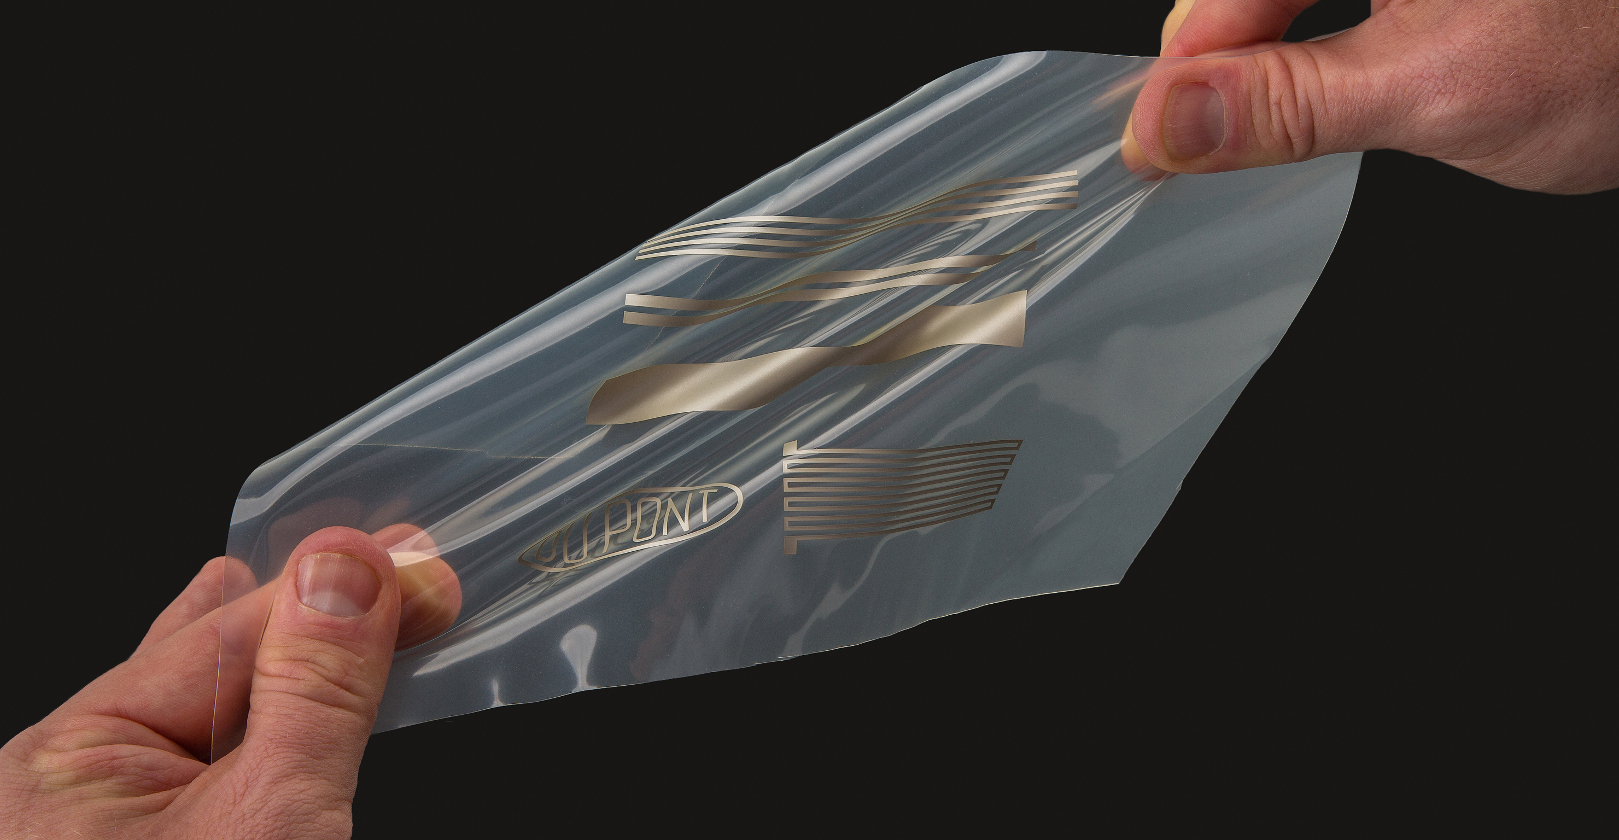 DuPont Develops Clothing, Medical and Automotive Applications for Stretchable Conductive Paste